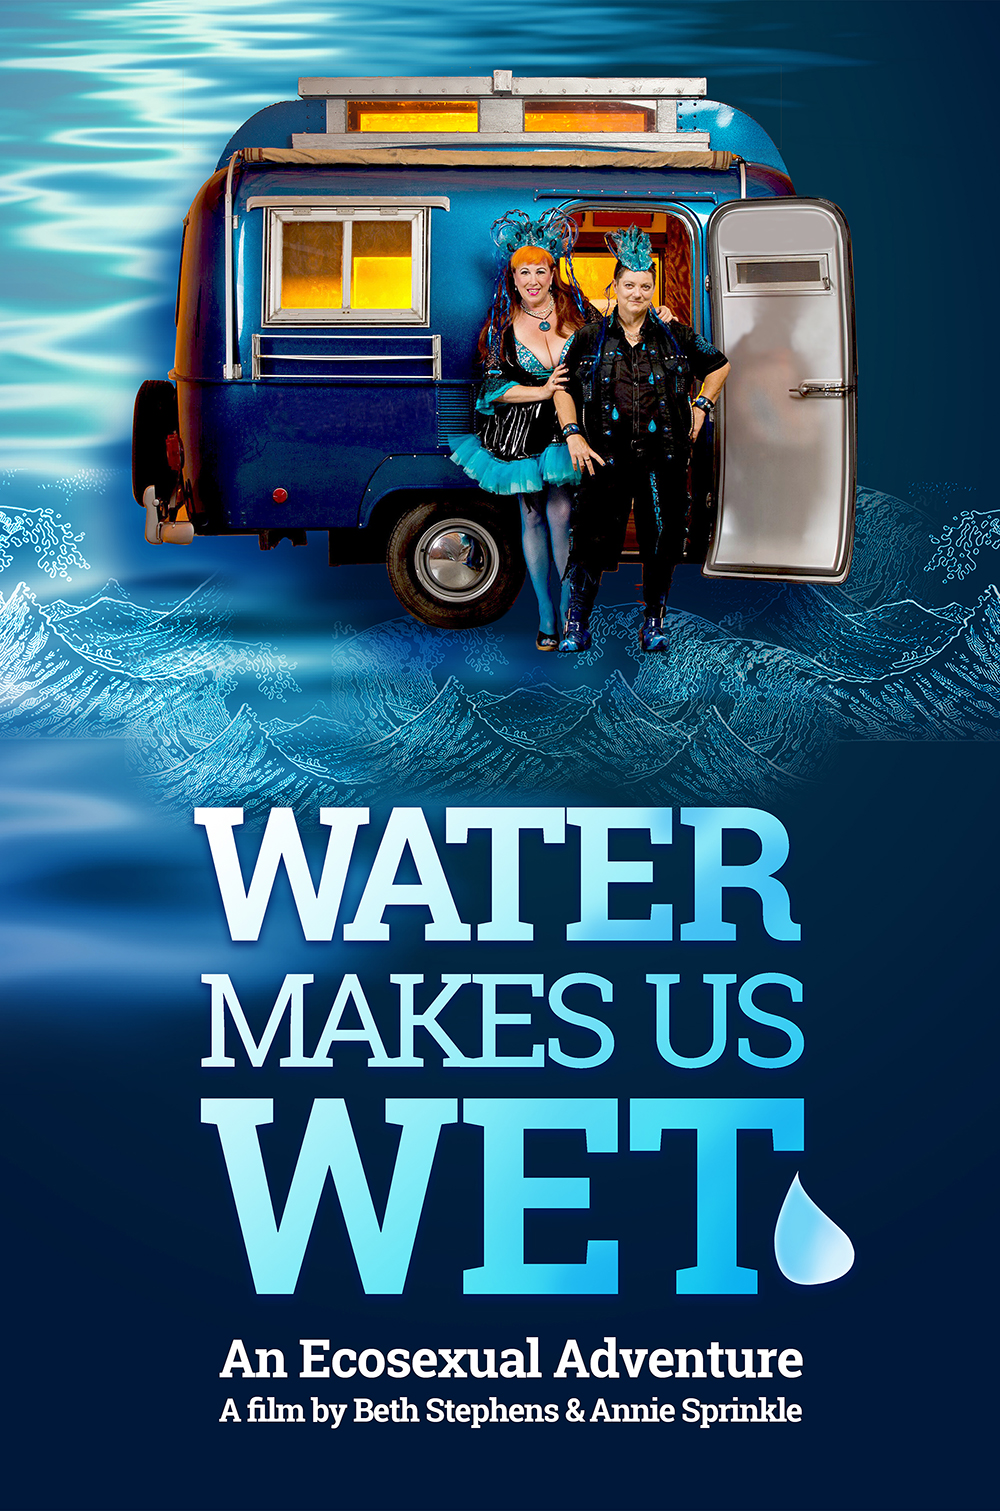 Water Makes Us Wet film poster